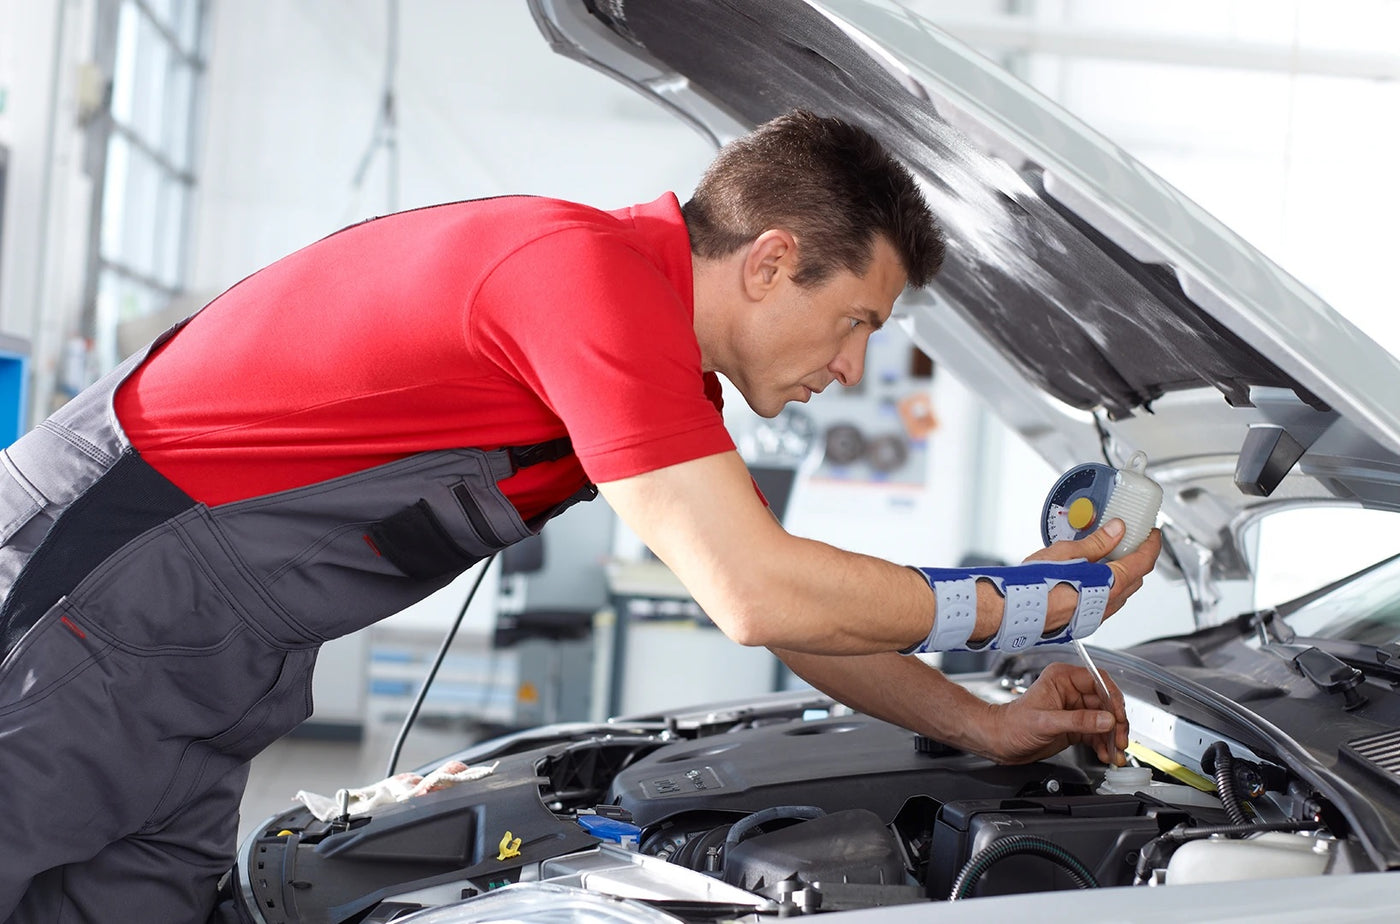 A car-mechanic wearing a red shirt and grey mechanic suit, and on his right hand is a wrist brace made by Bauerfeind.